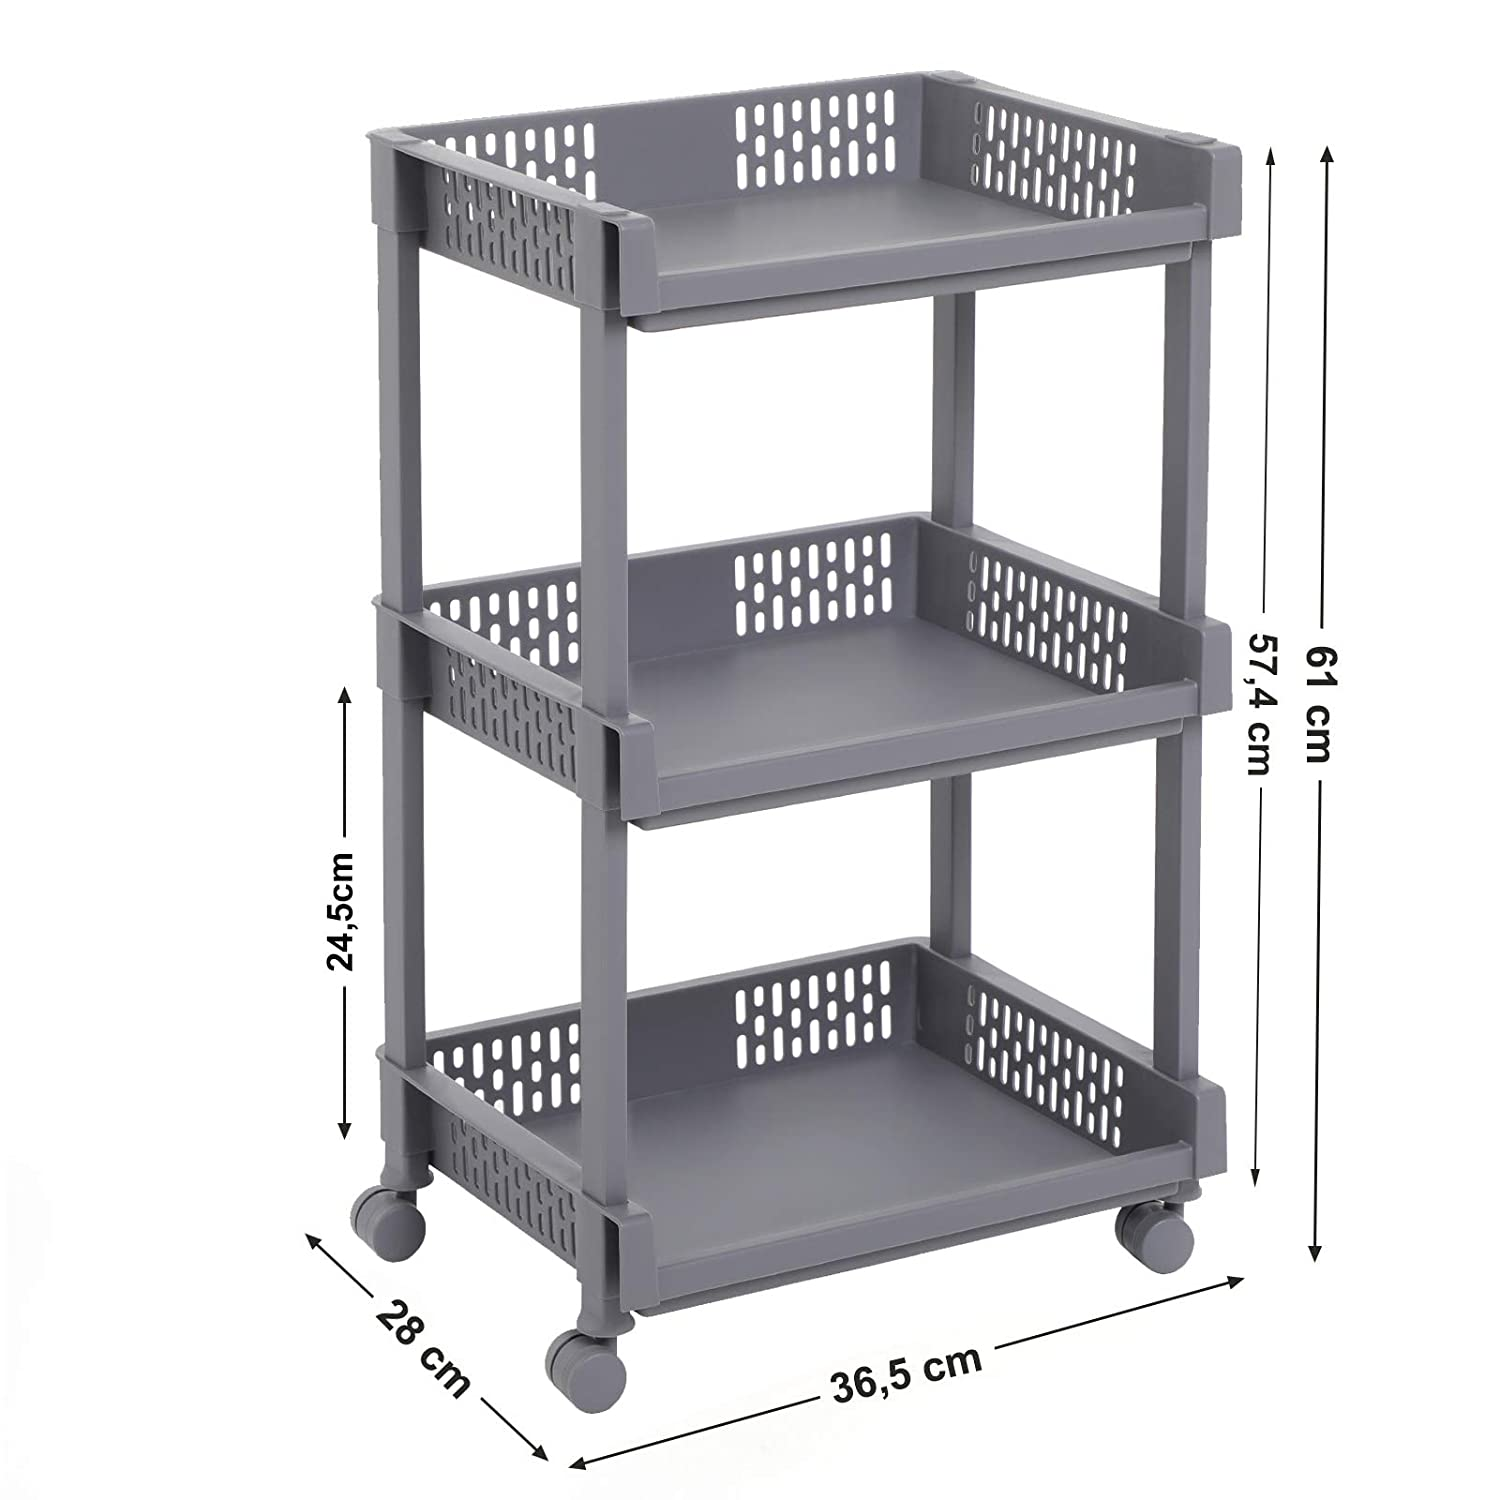 SONGMICS Rolling Trolley Storage Unit with 3 Shelves for Kitchen Bathroom Cellar KSC03WT